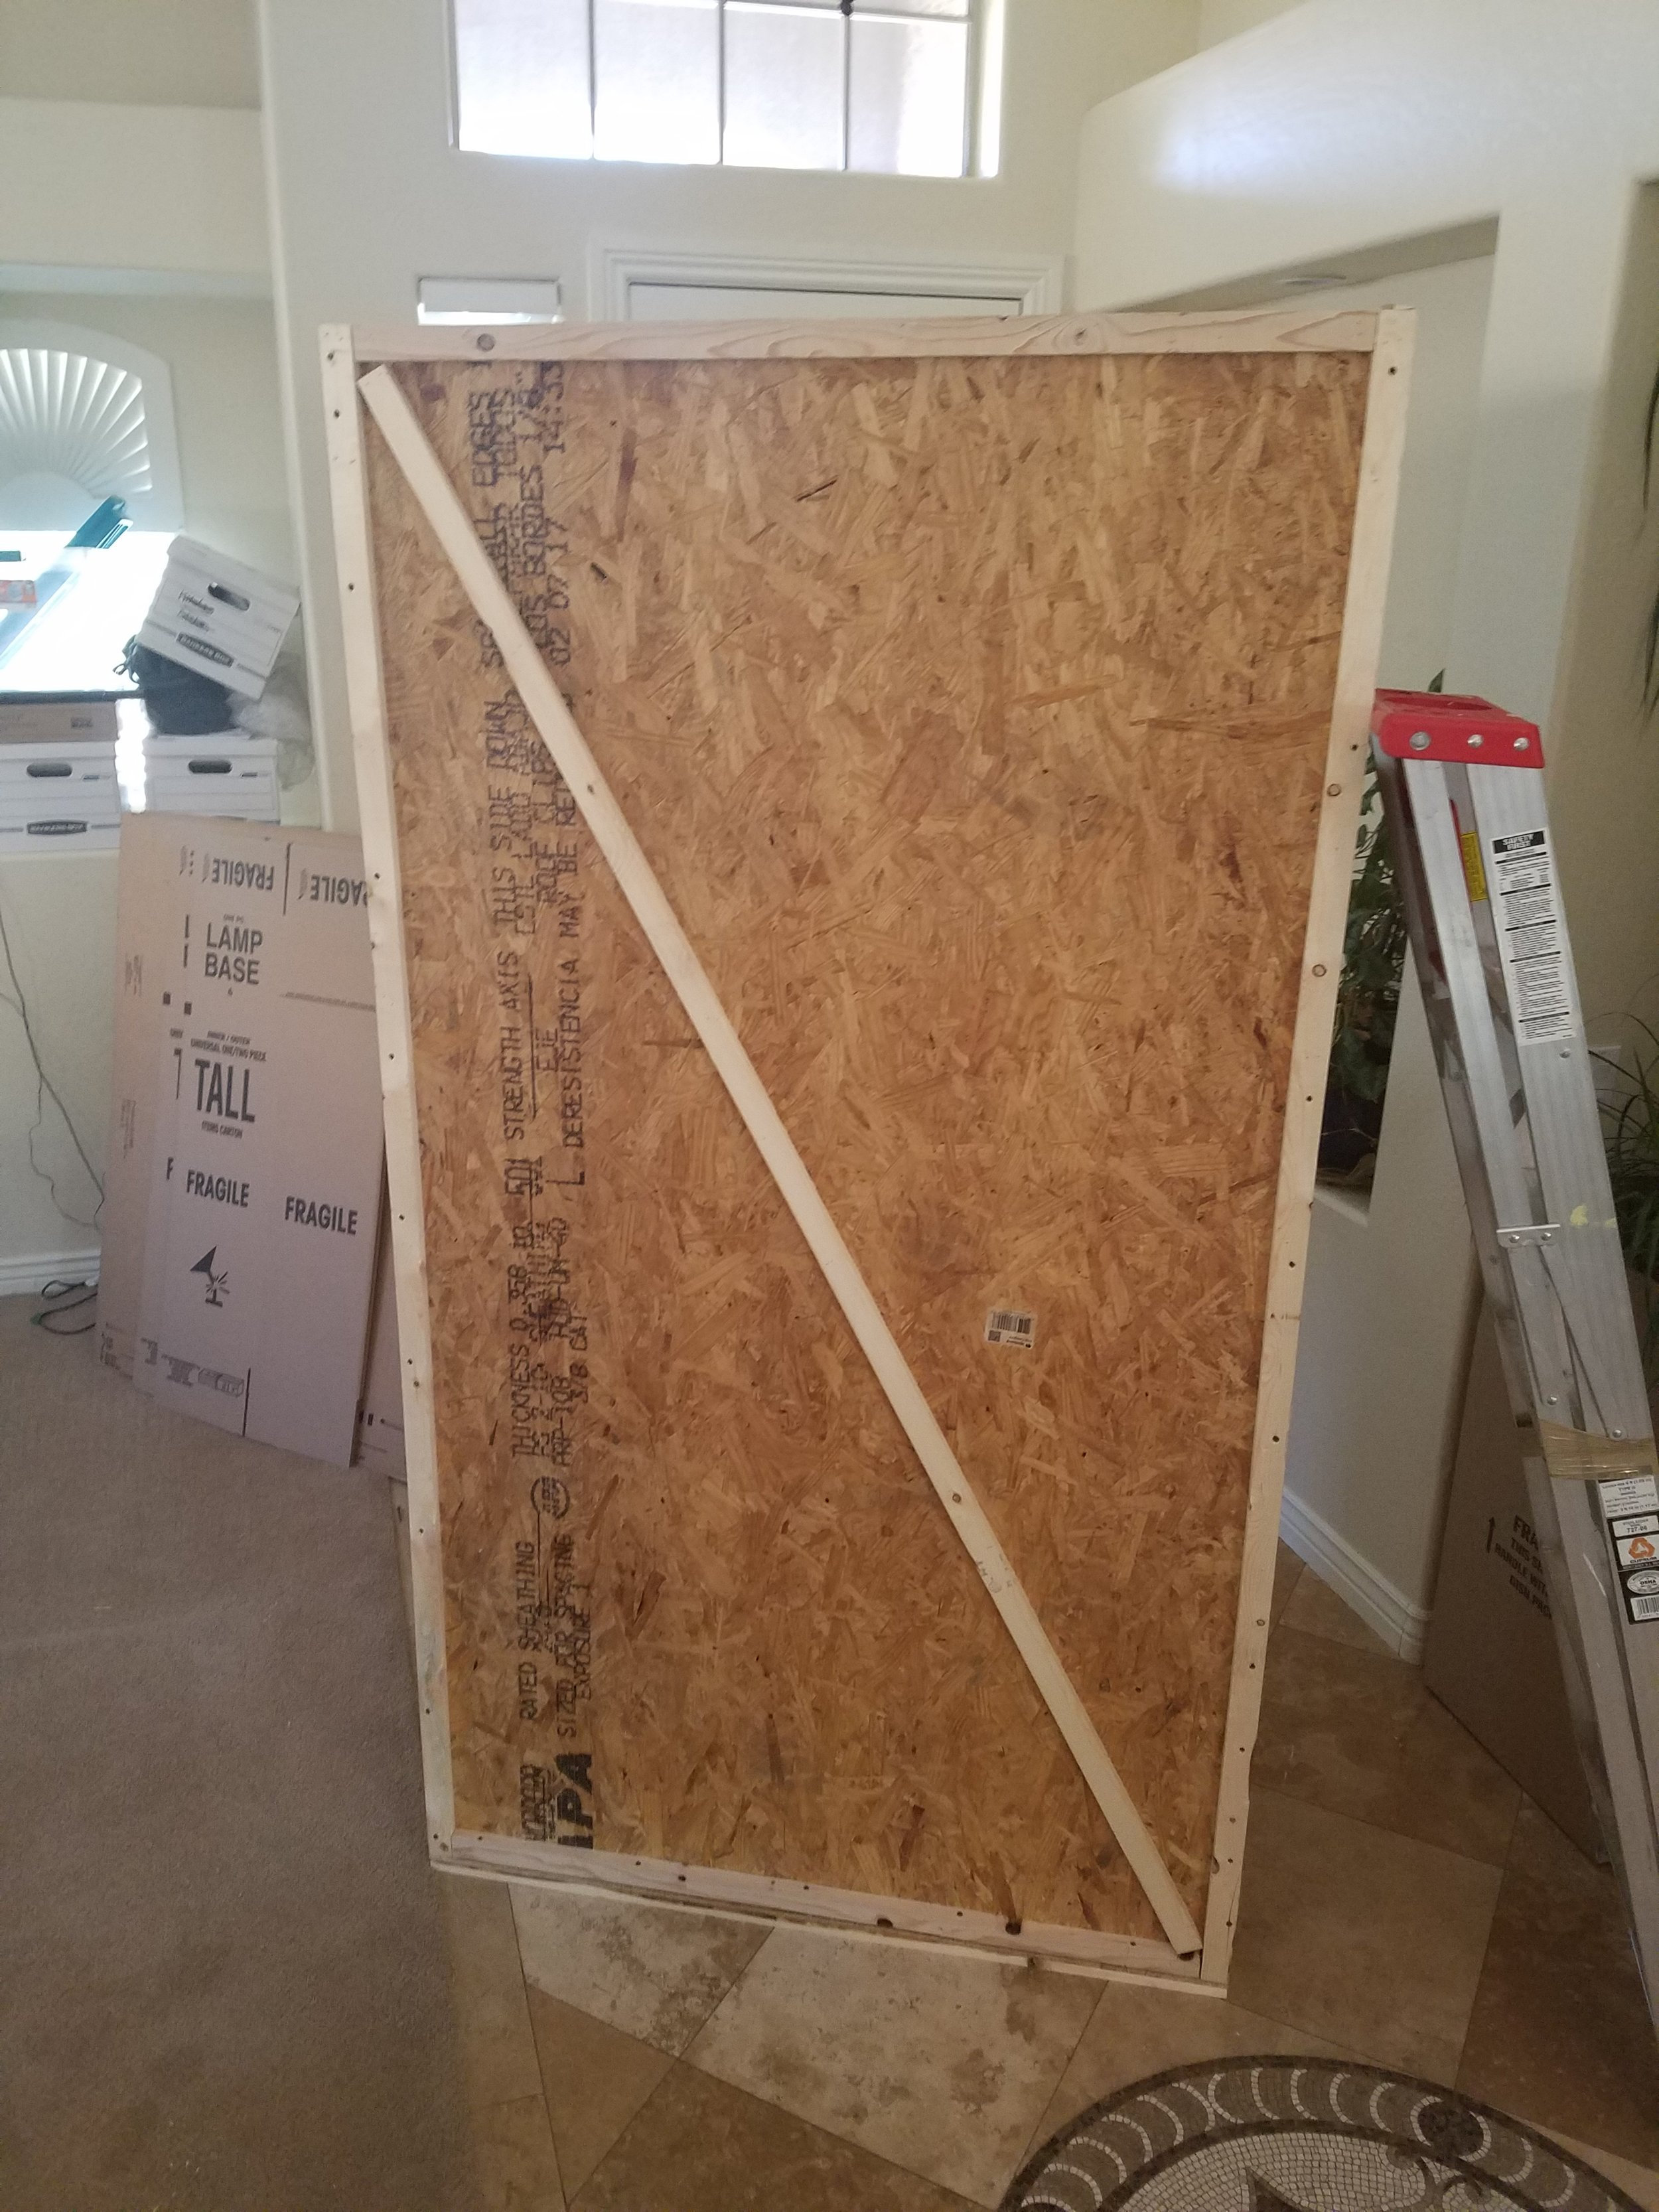 7 Foot Tall Crate